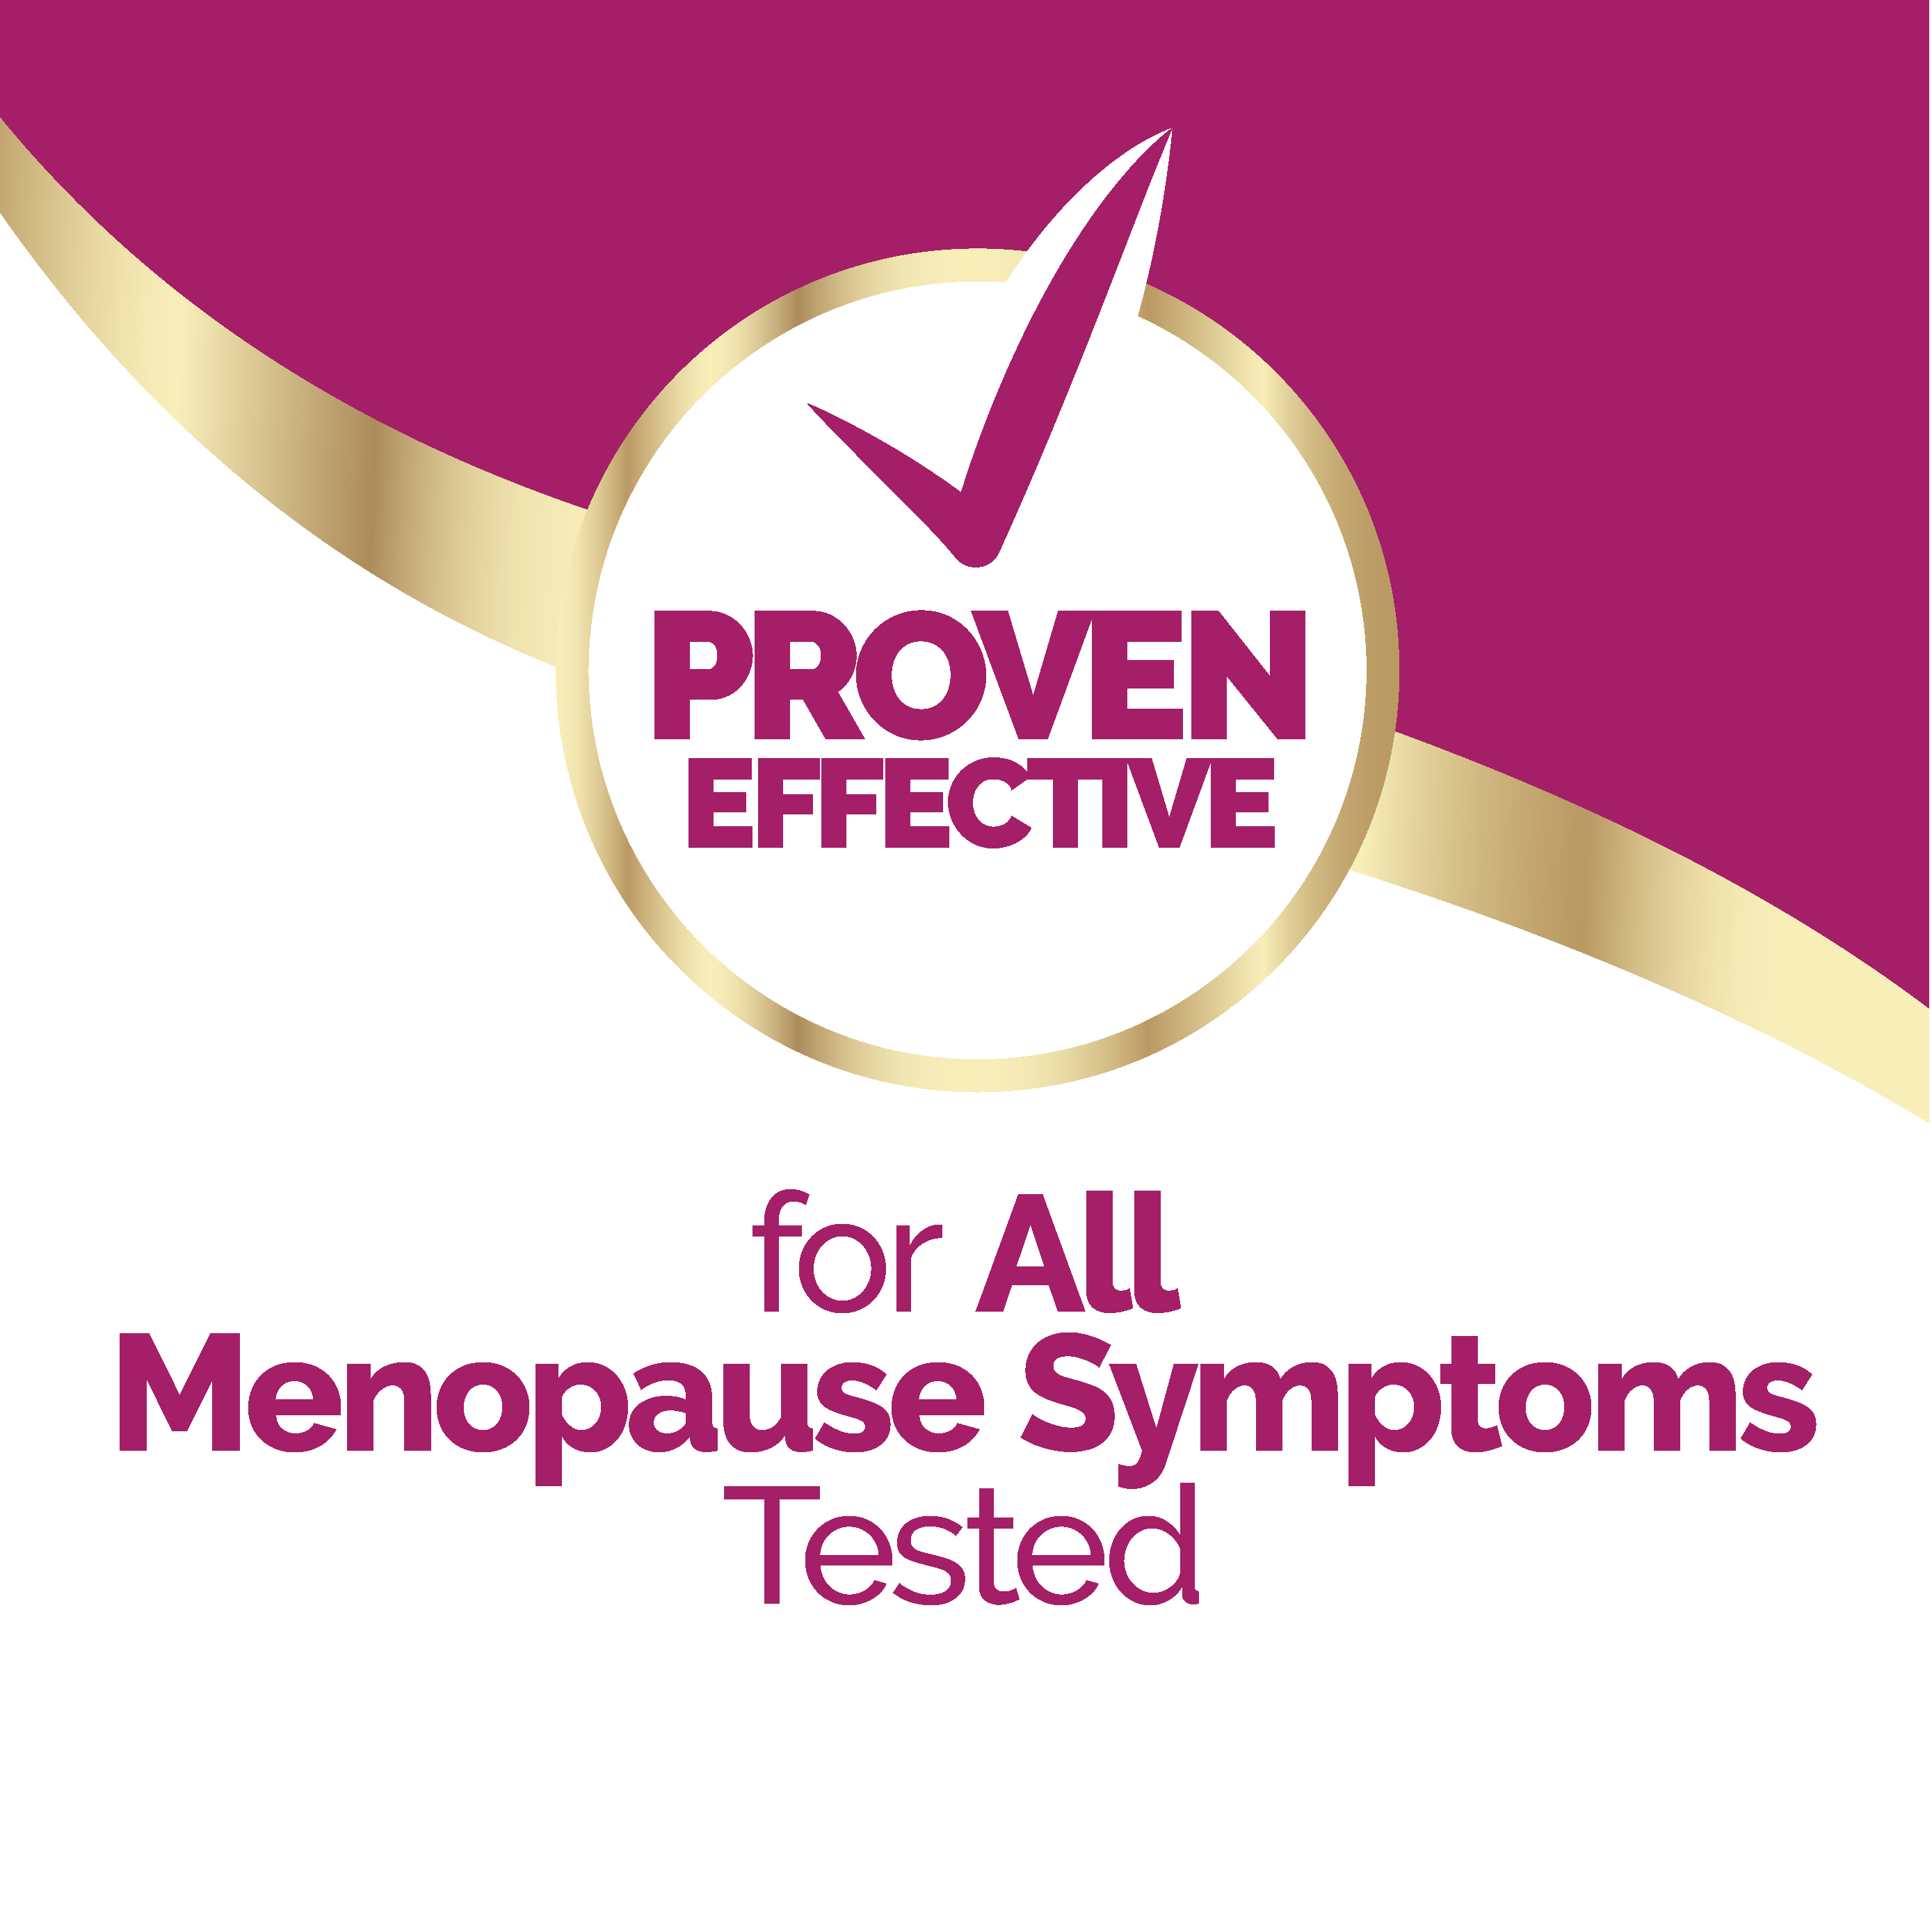 Proven Effective for All Menopause Symptoms Image